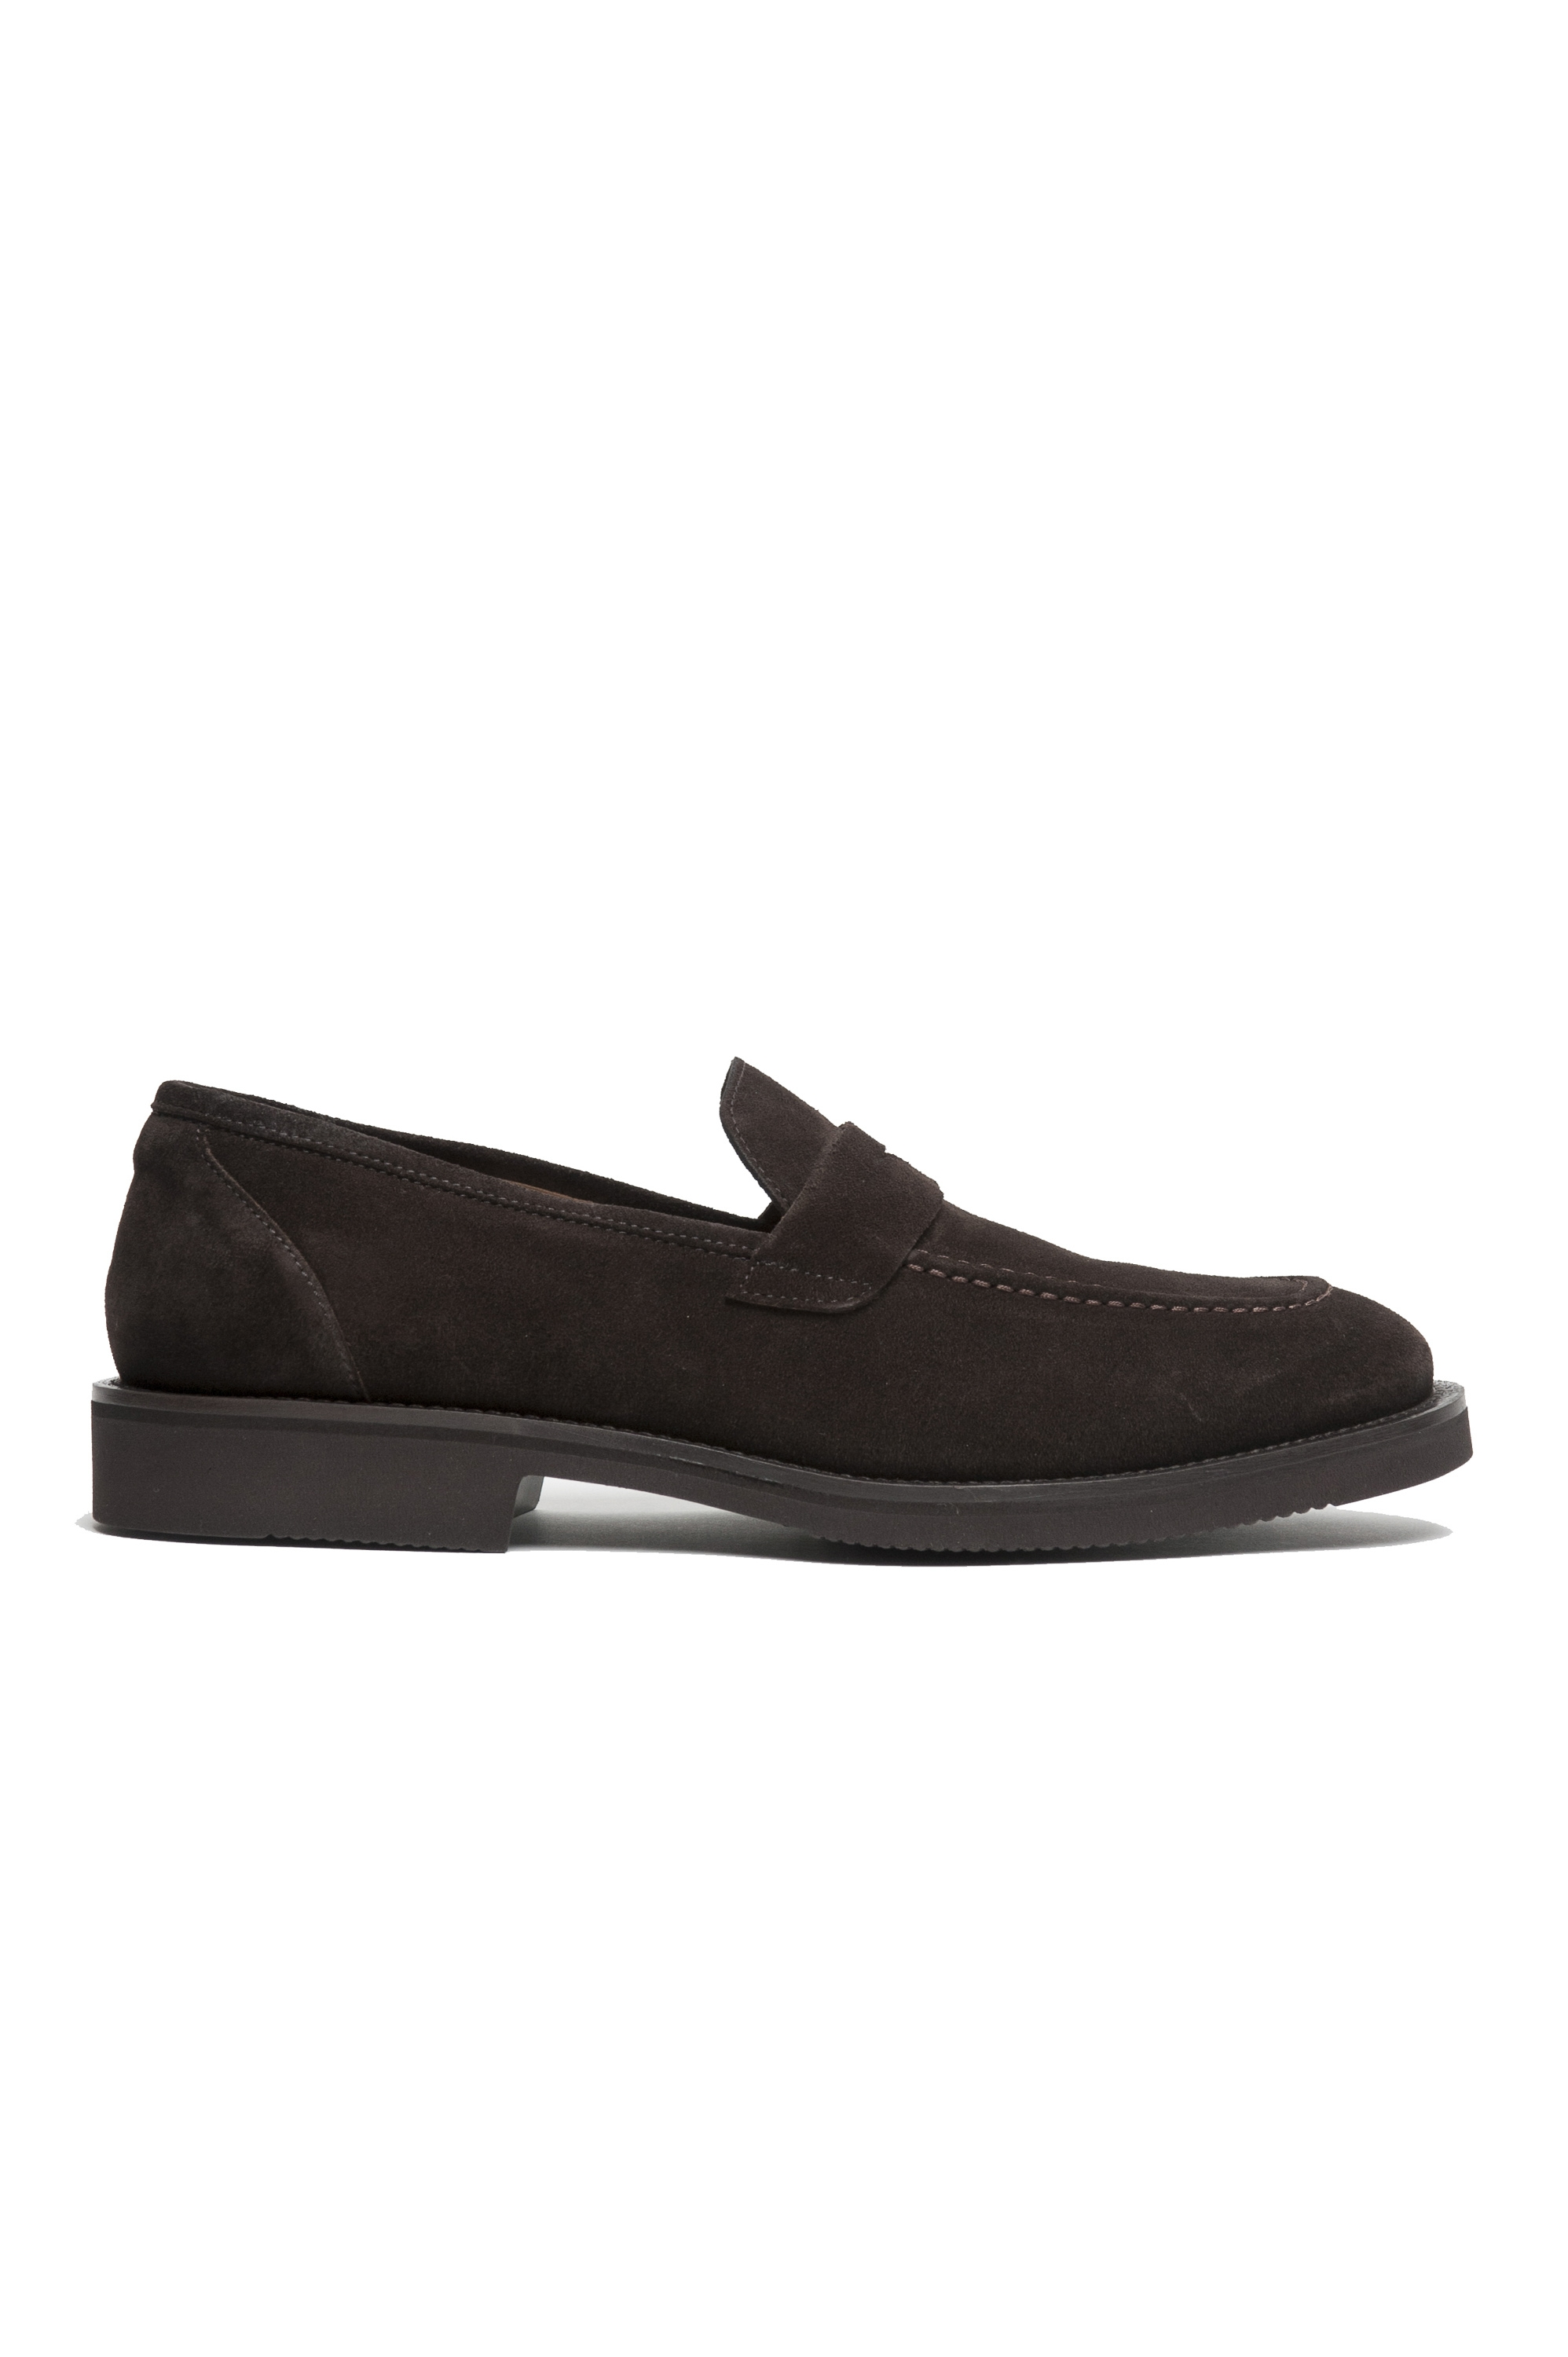 SBU 02977_2020AW Brown plain suede calfskin loafers with rubber sole  05